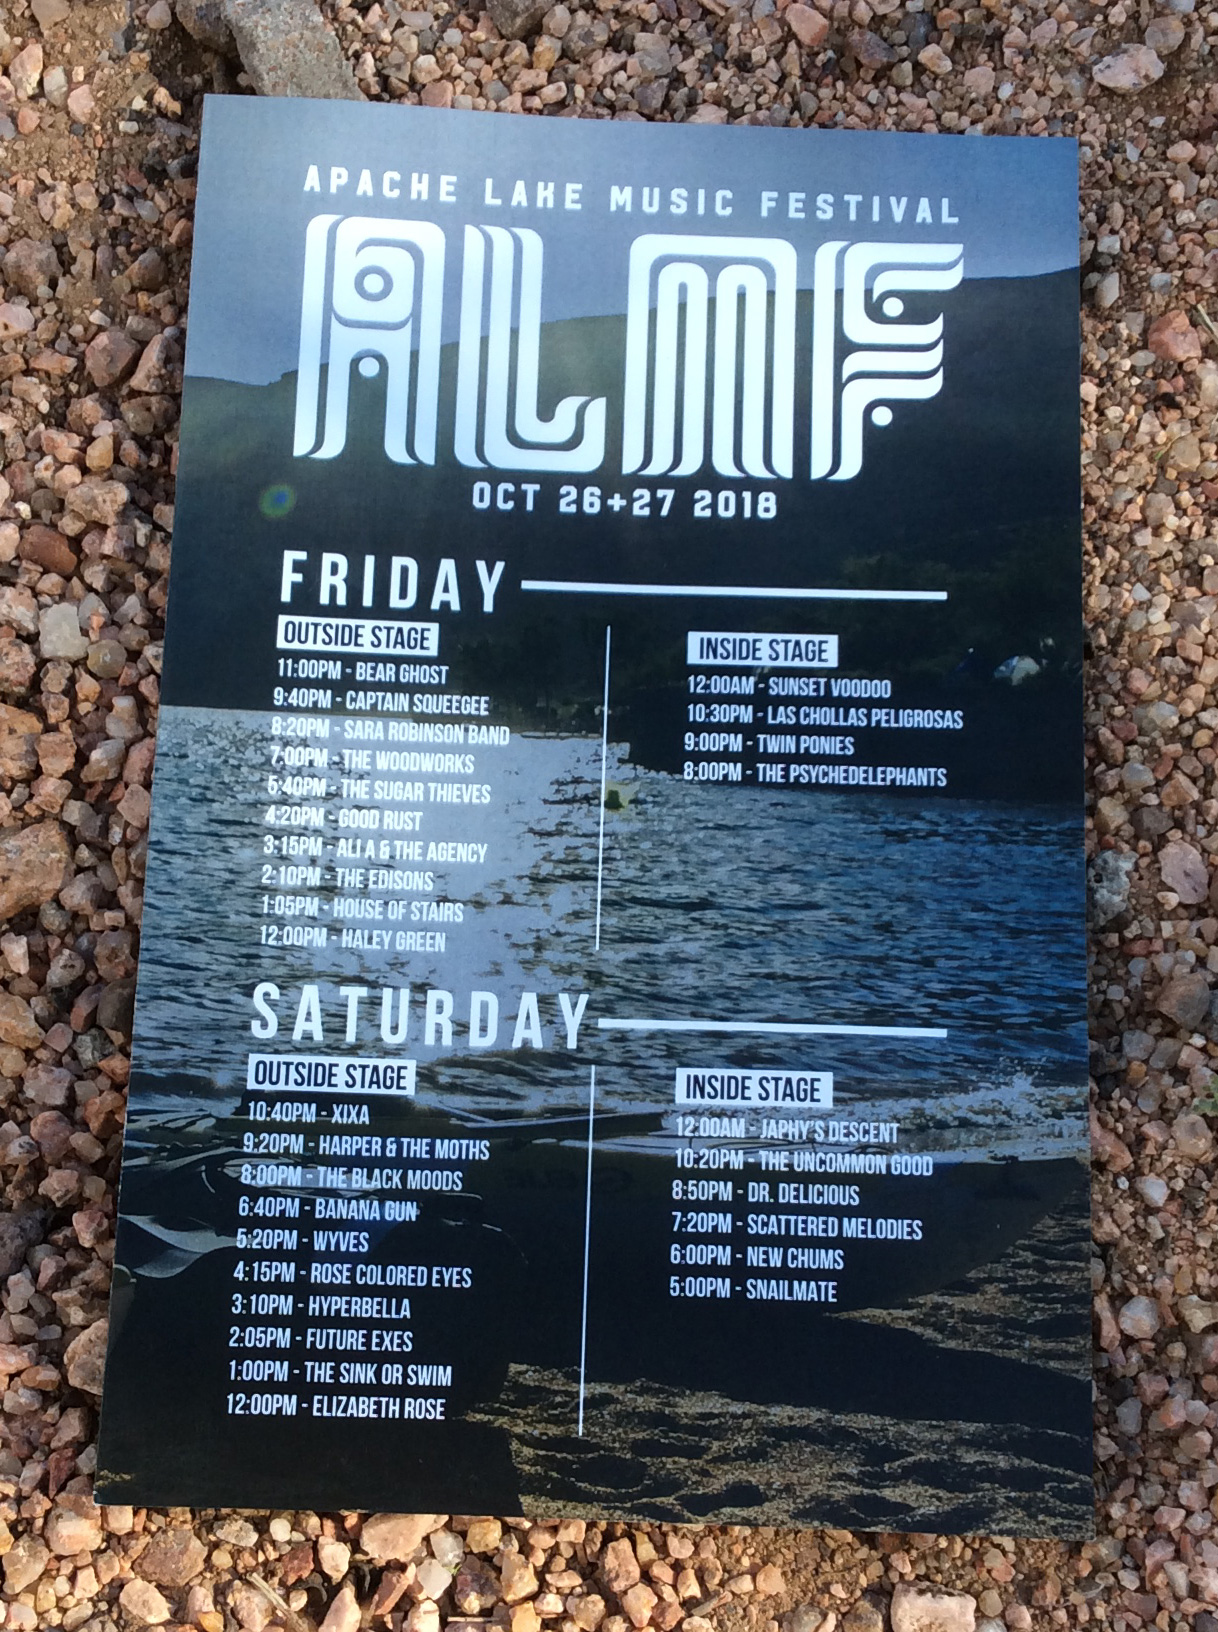 Apache Lake Music Festival 2018 Poster - Photo Credit: Nick Gonzaga